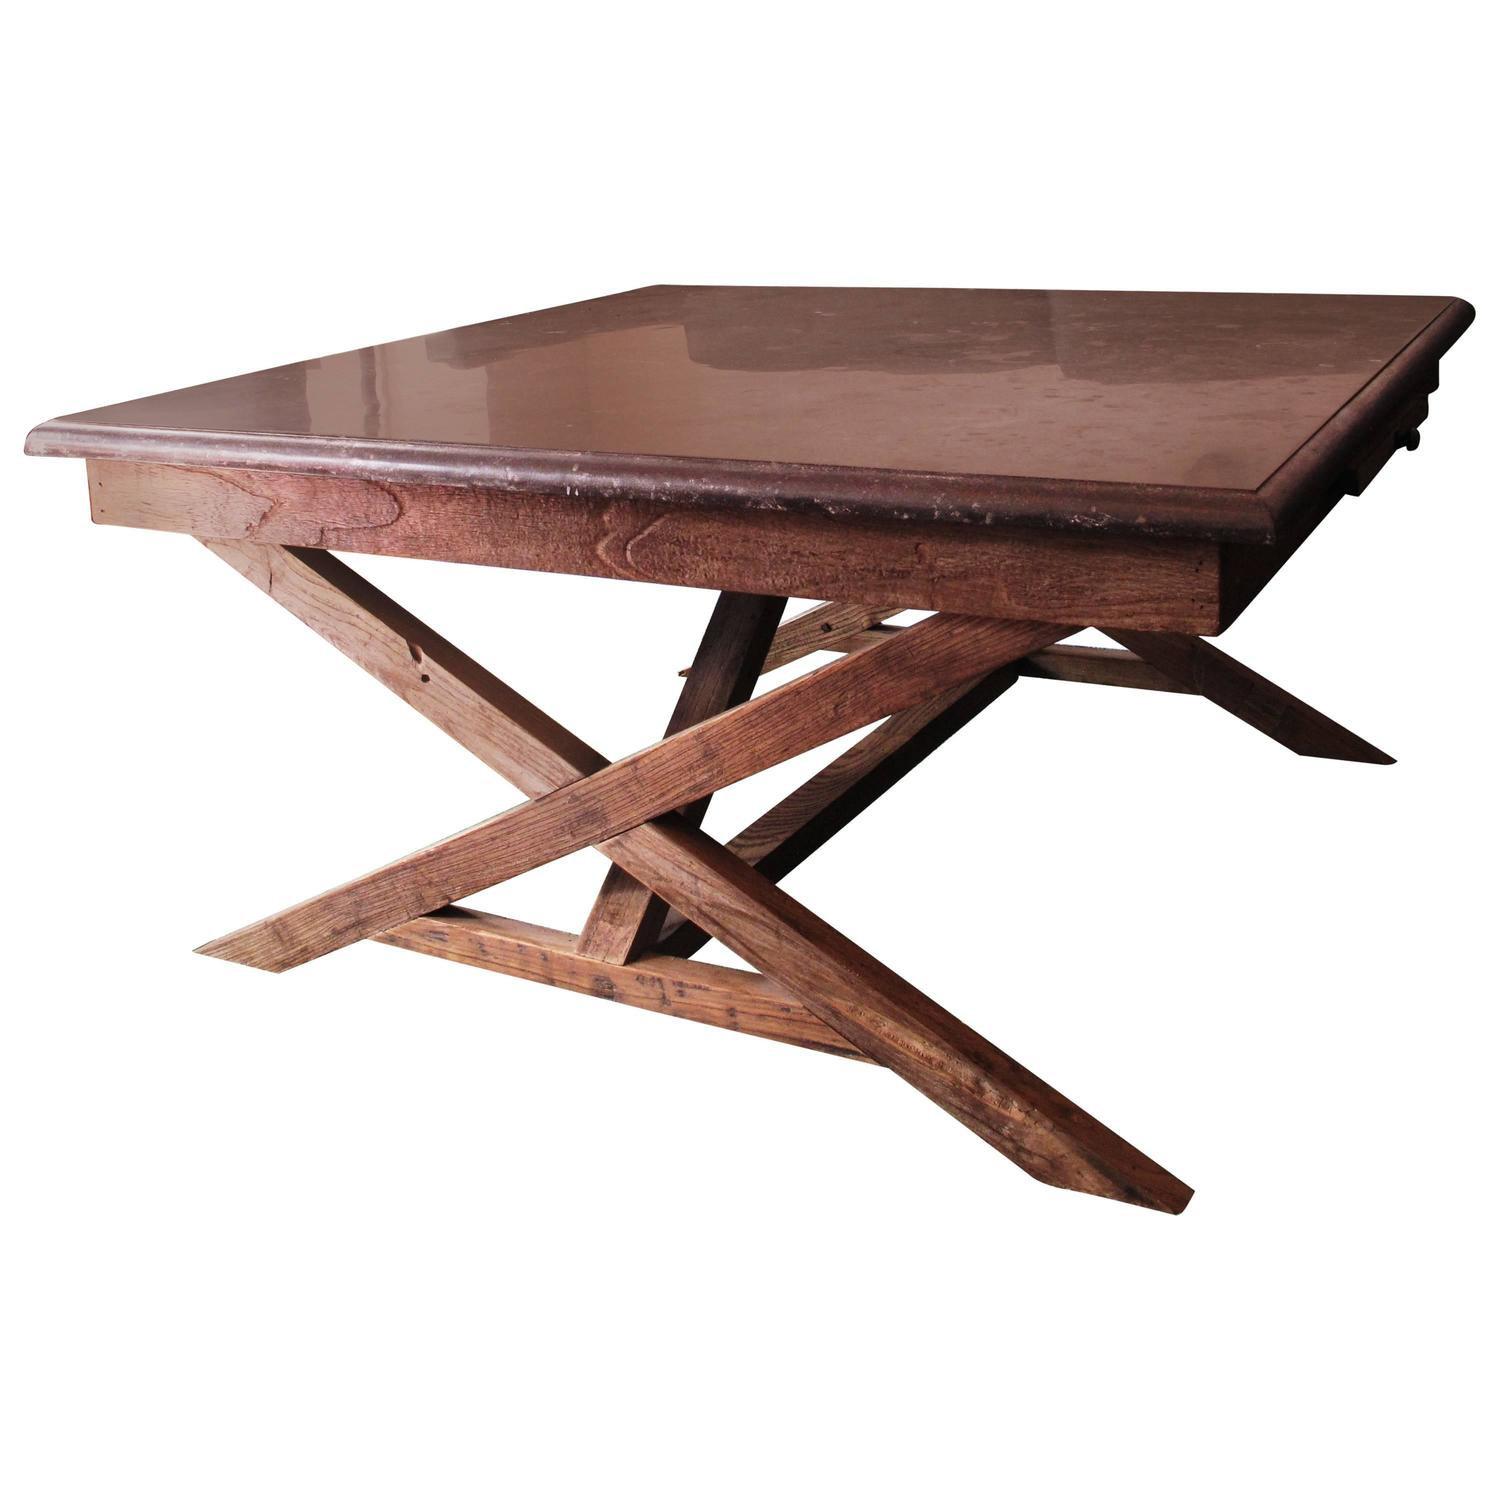 Rustic Wood Slab Coffee Table For Sale At 1stdibs: Reclaimed Wood Coffee Table With Bluestone Slab For Sale